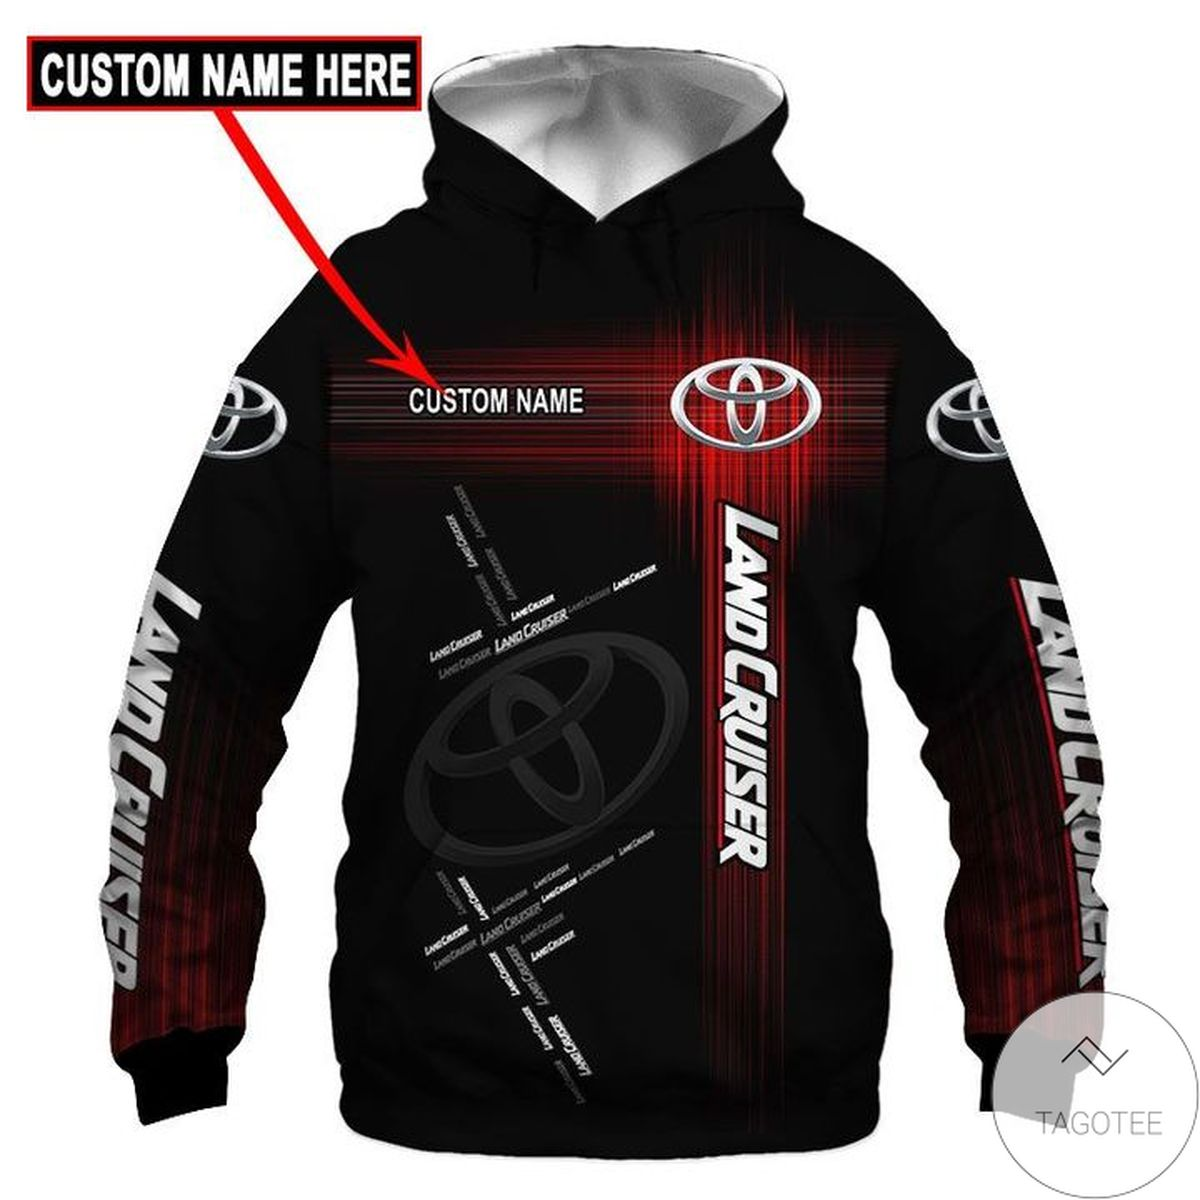 Personalized Landcruiser 3d Hoodie